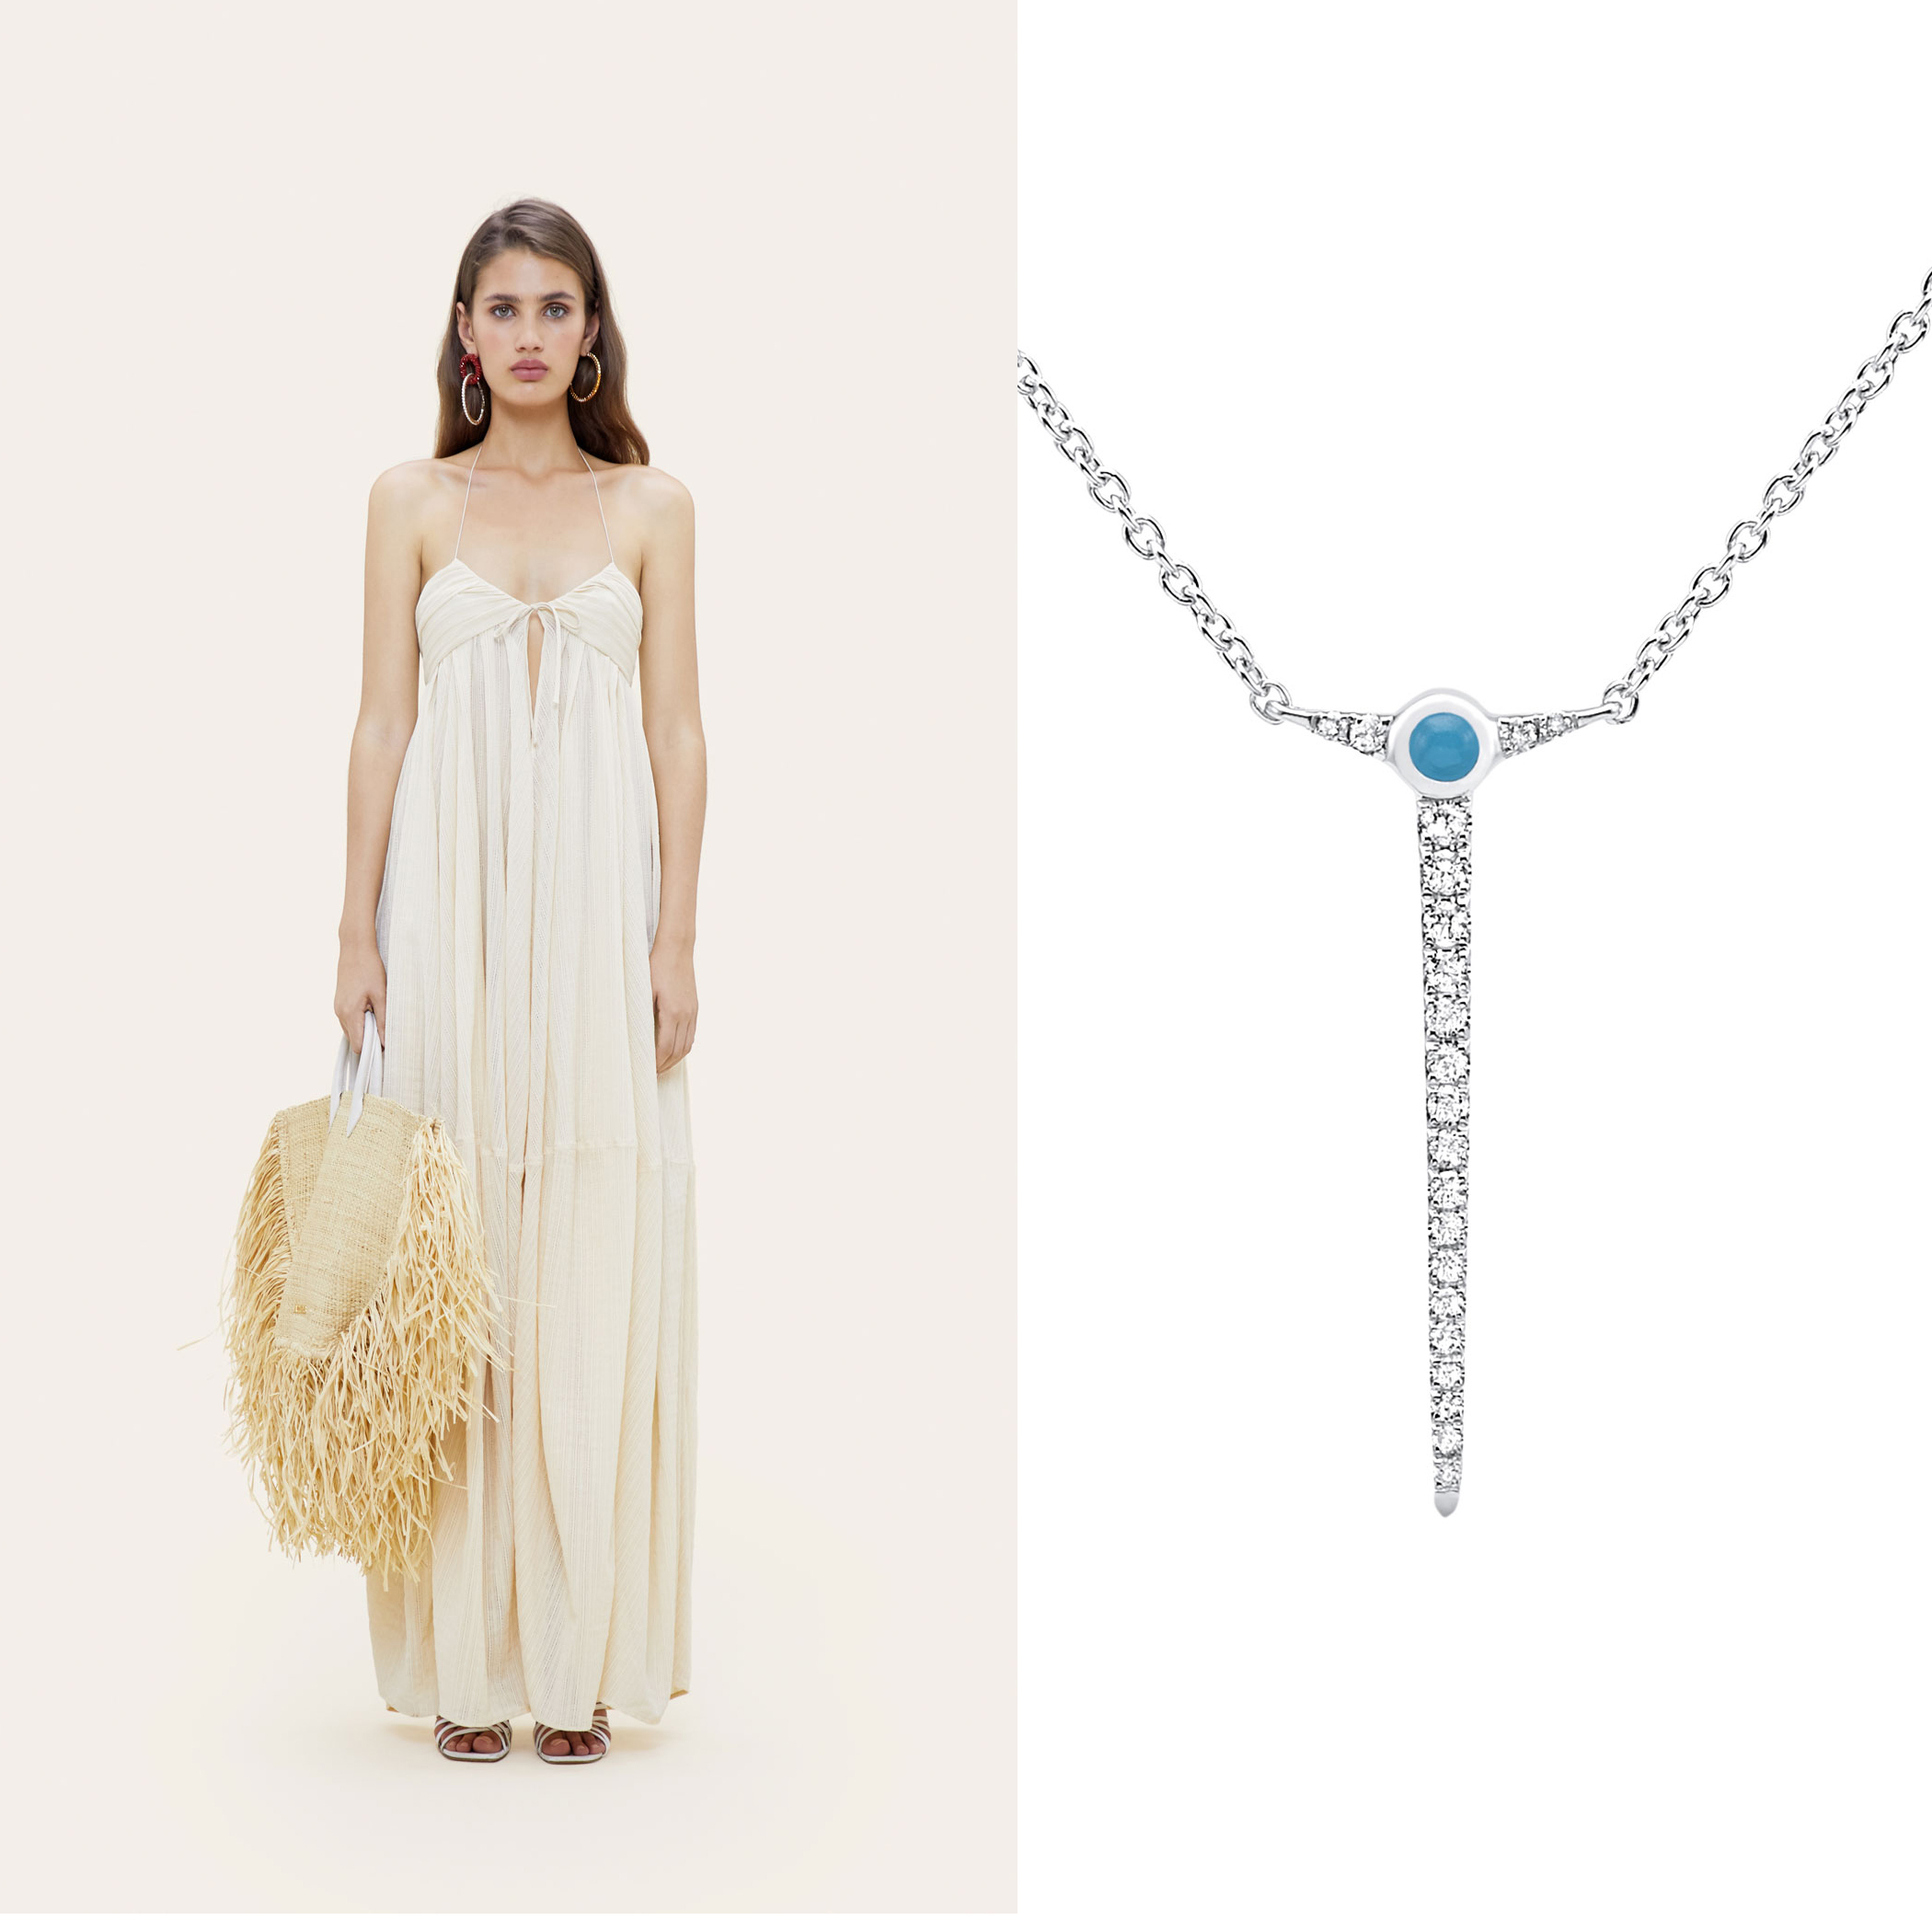 Robe Calci jacquemus et Collier Cyclades